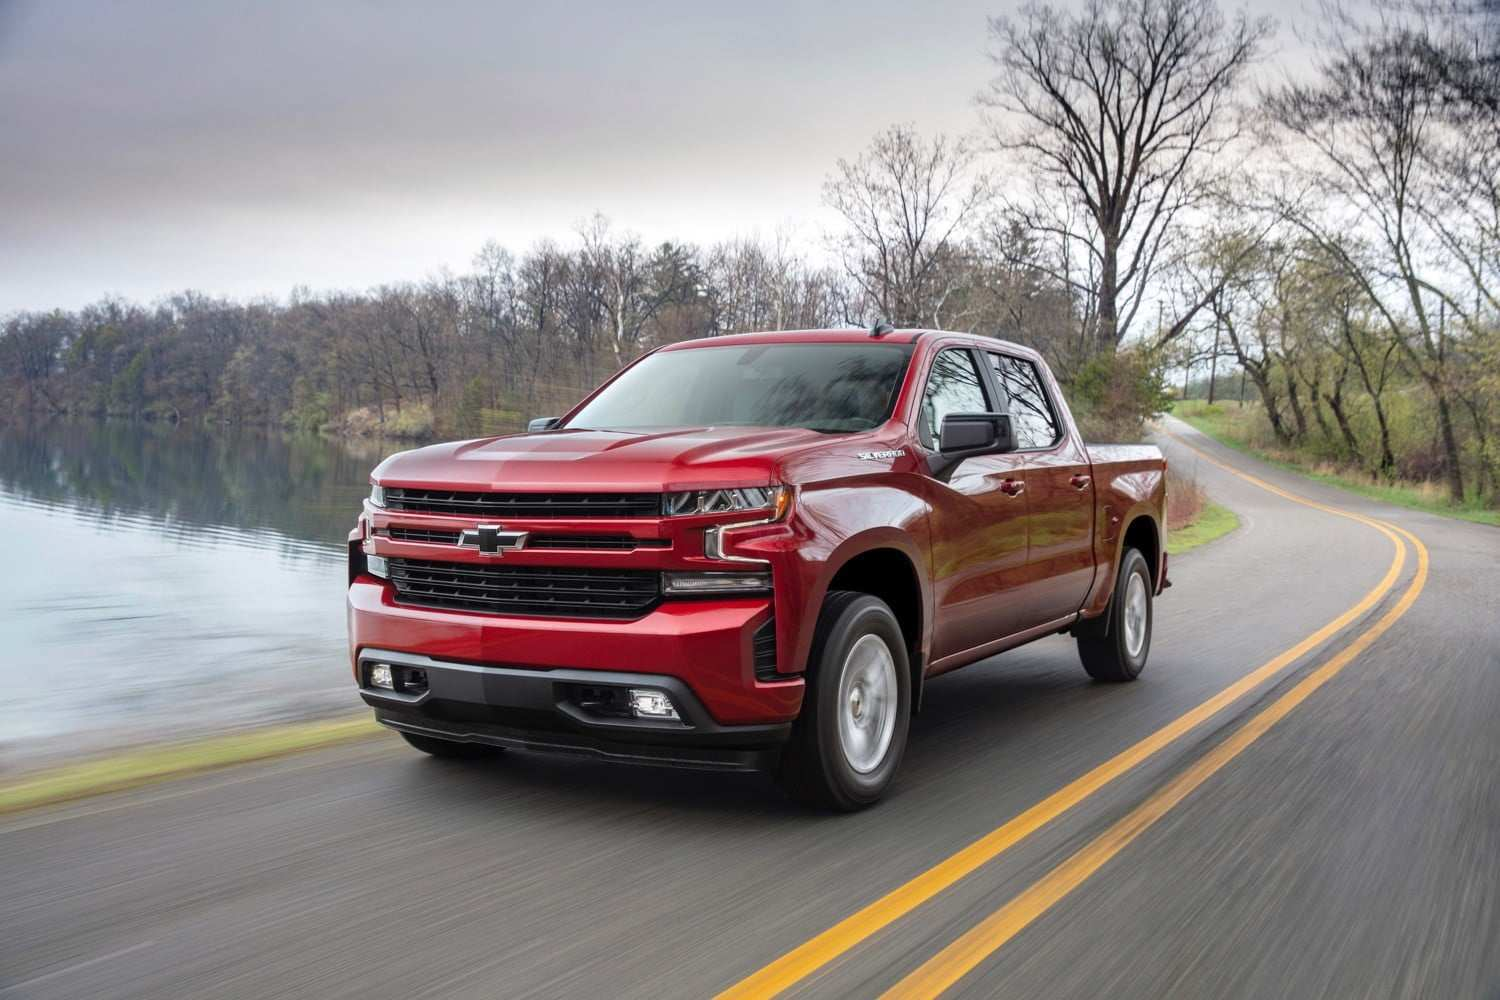 96 All New Best Gmc Vs Silverado 2019 Concept Redesign And Review Performance and New Engine for Best Gmc Vs Silverado 2019 Concept Redesign And Review